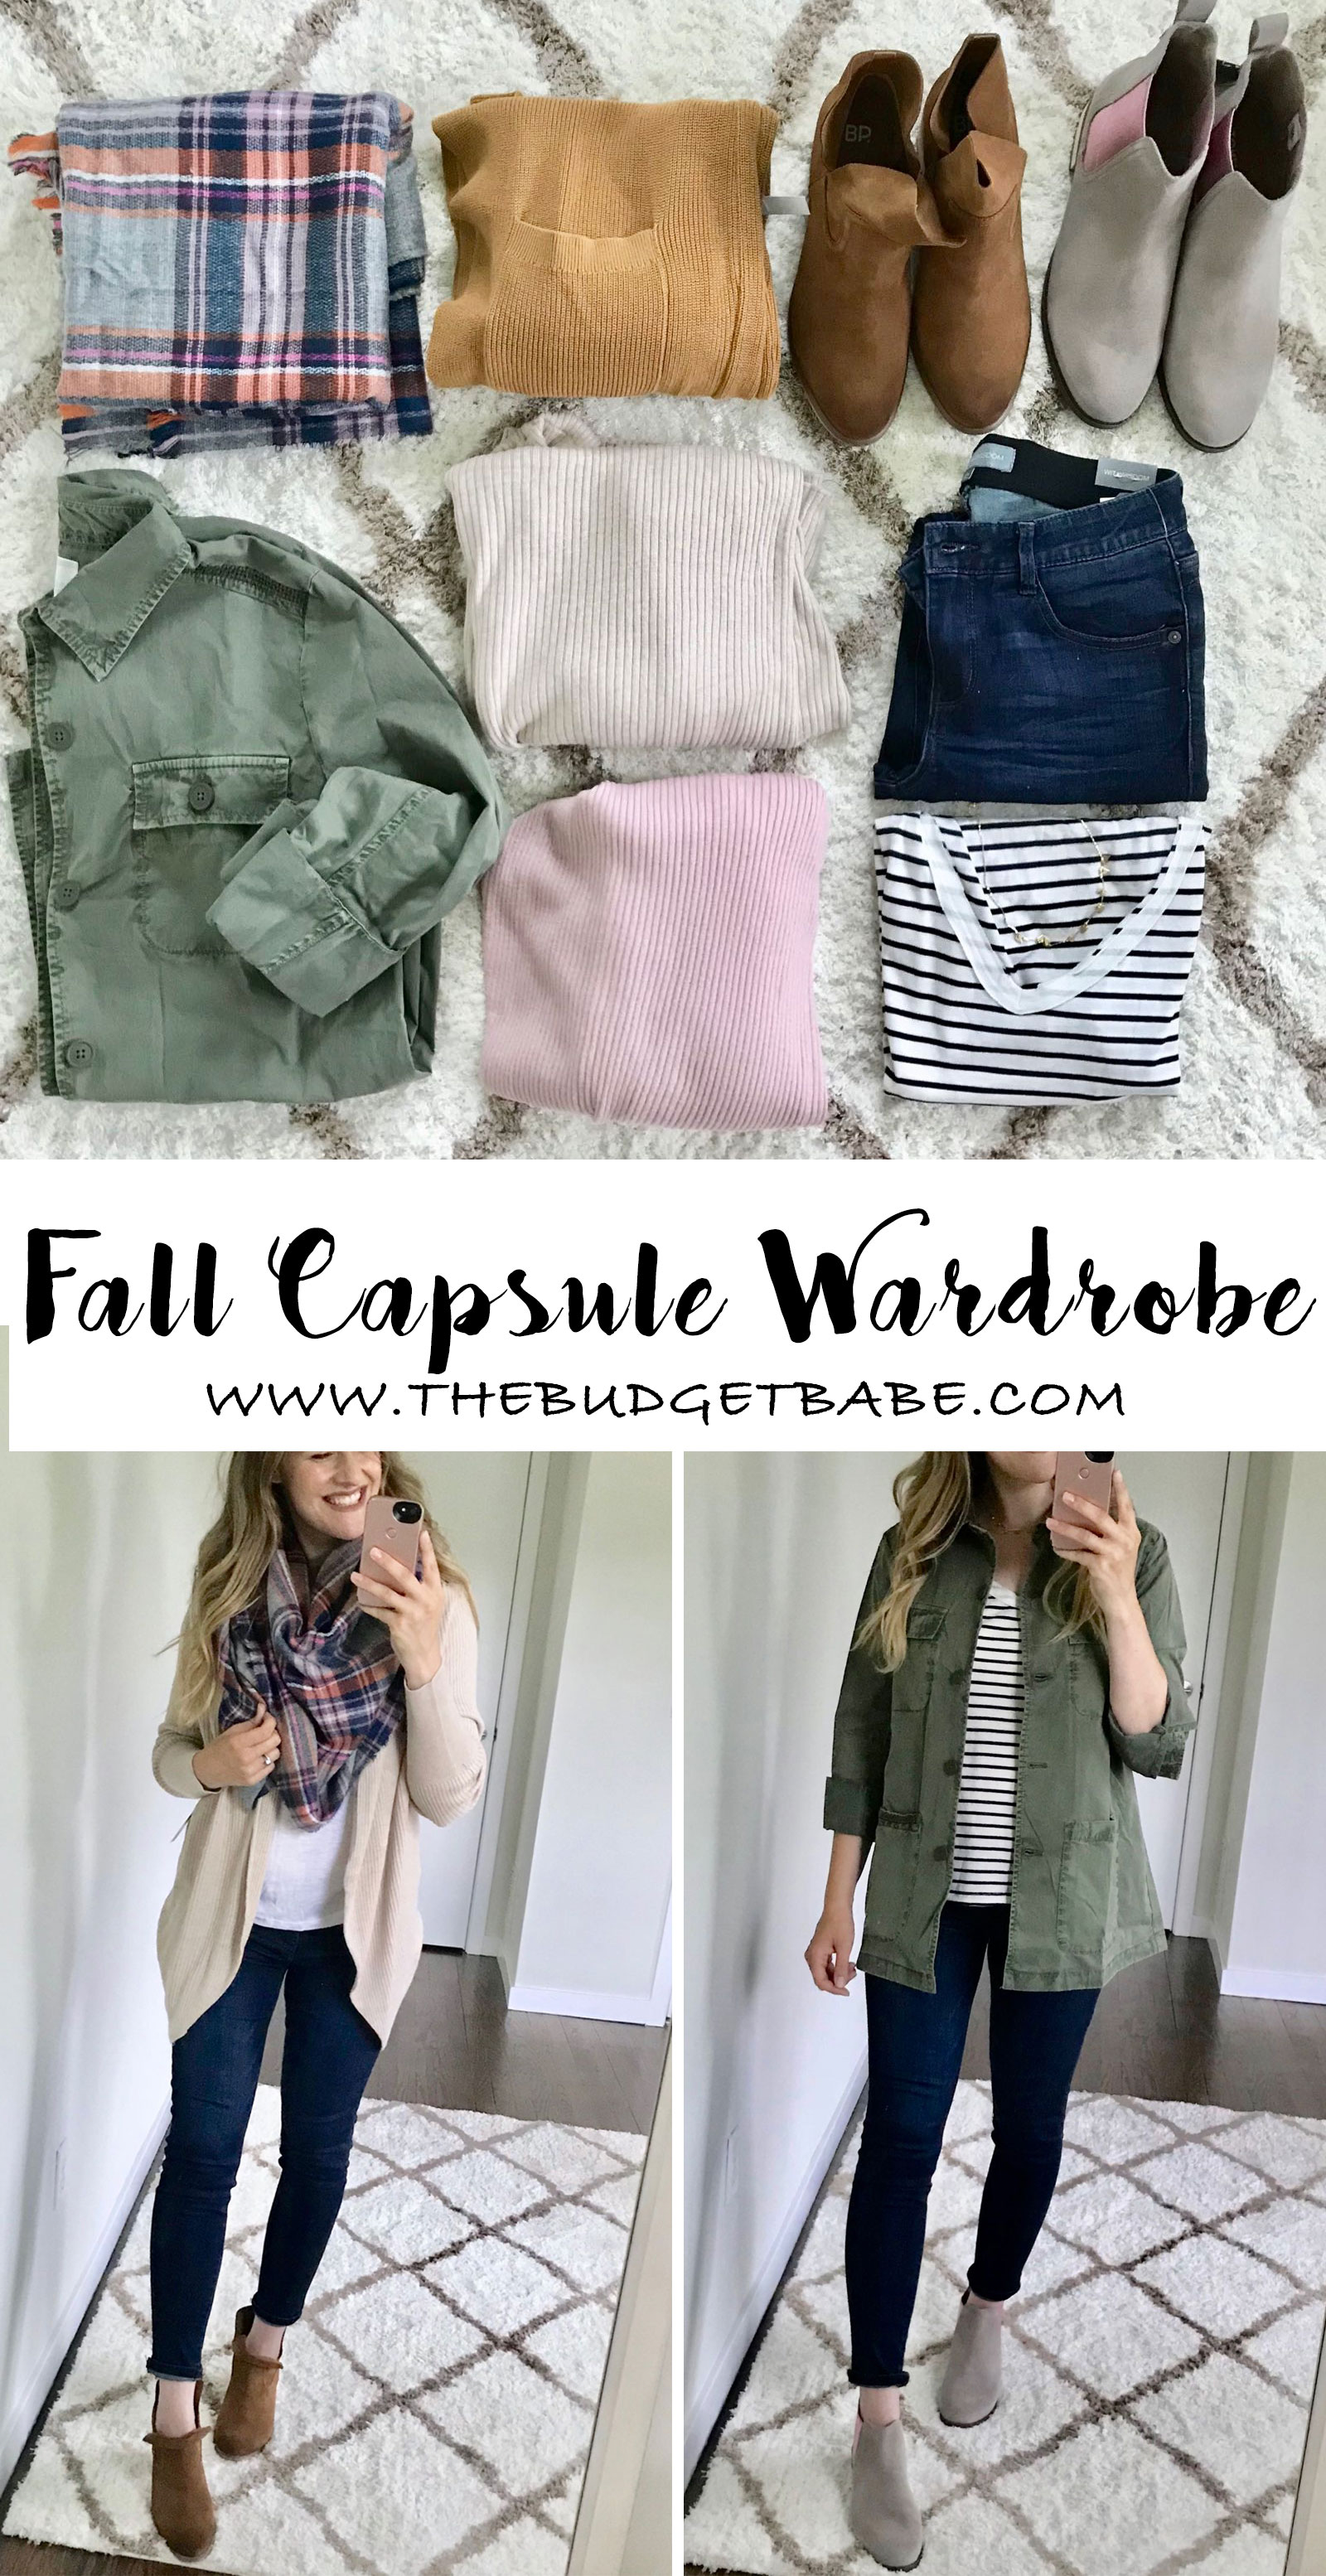 Fall Capsule wardrobe for stay-at-home moms, casual outfit ideas for fall + winter on a budget